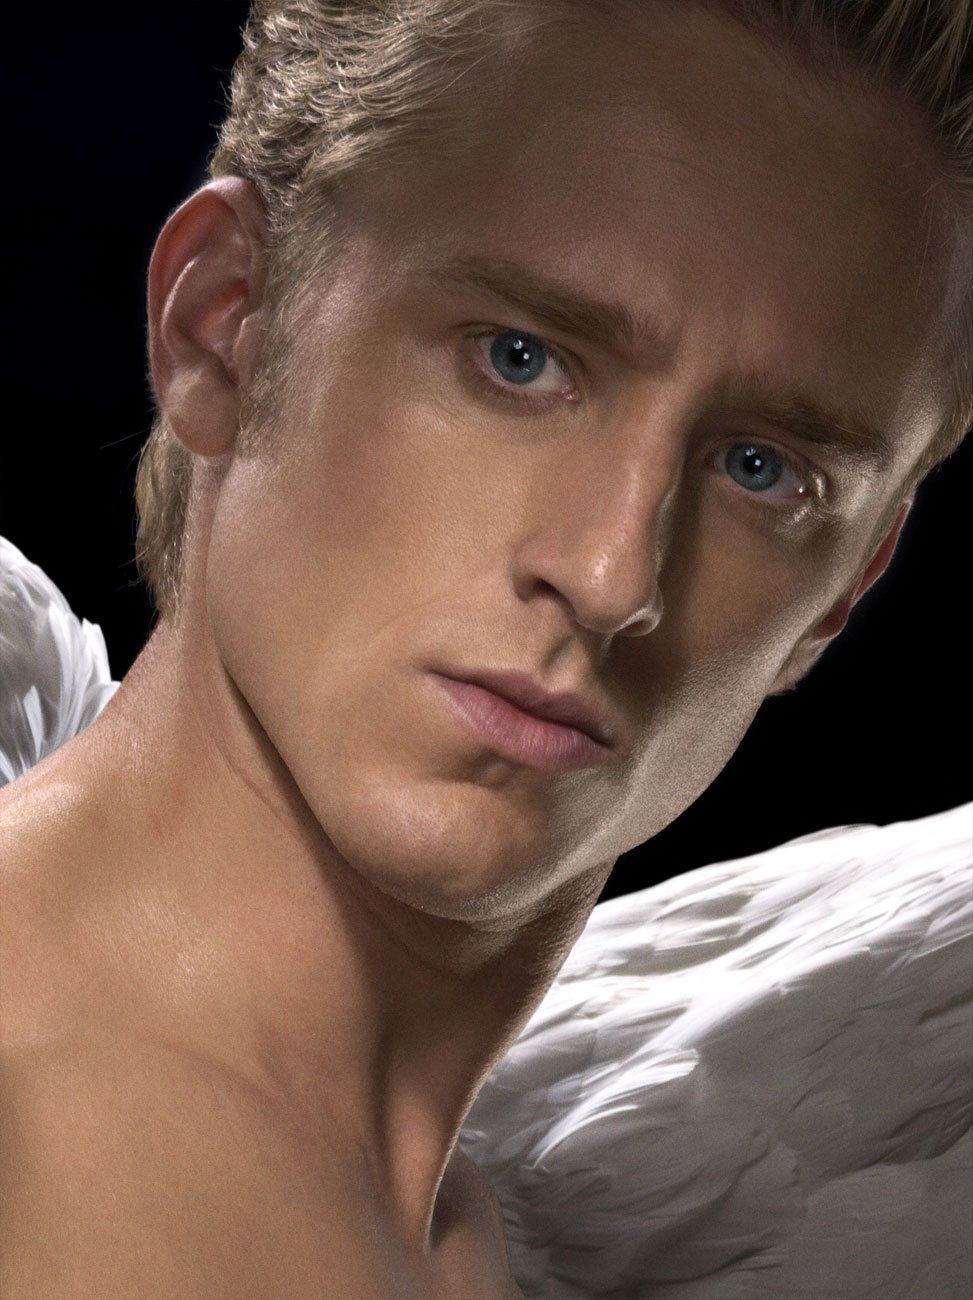 Quicksilver Avengers 2 And Days Of Future Past Image - Angel x3.jpg -...